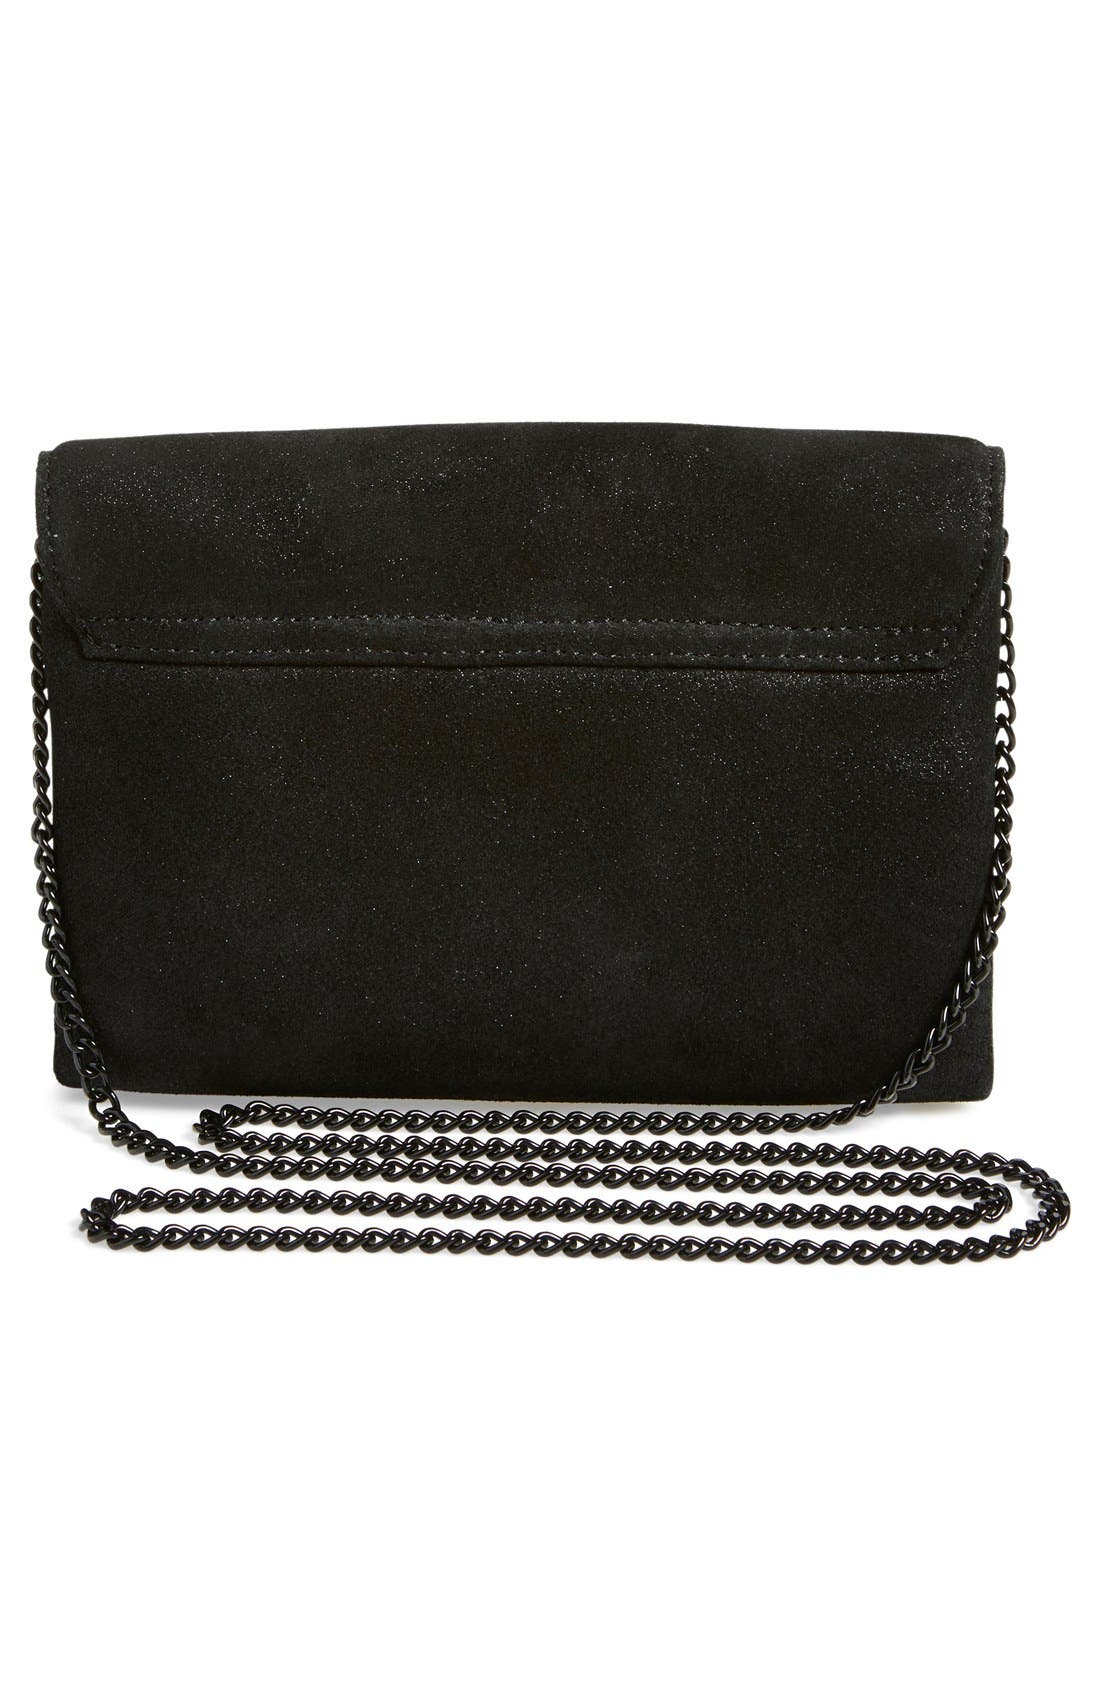 Alternate Image 3  - Loeffler Randall 'Junior Lock' Leather Clutch